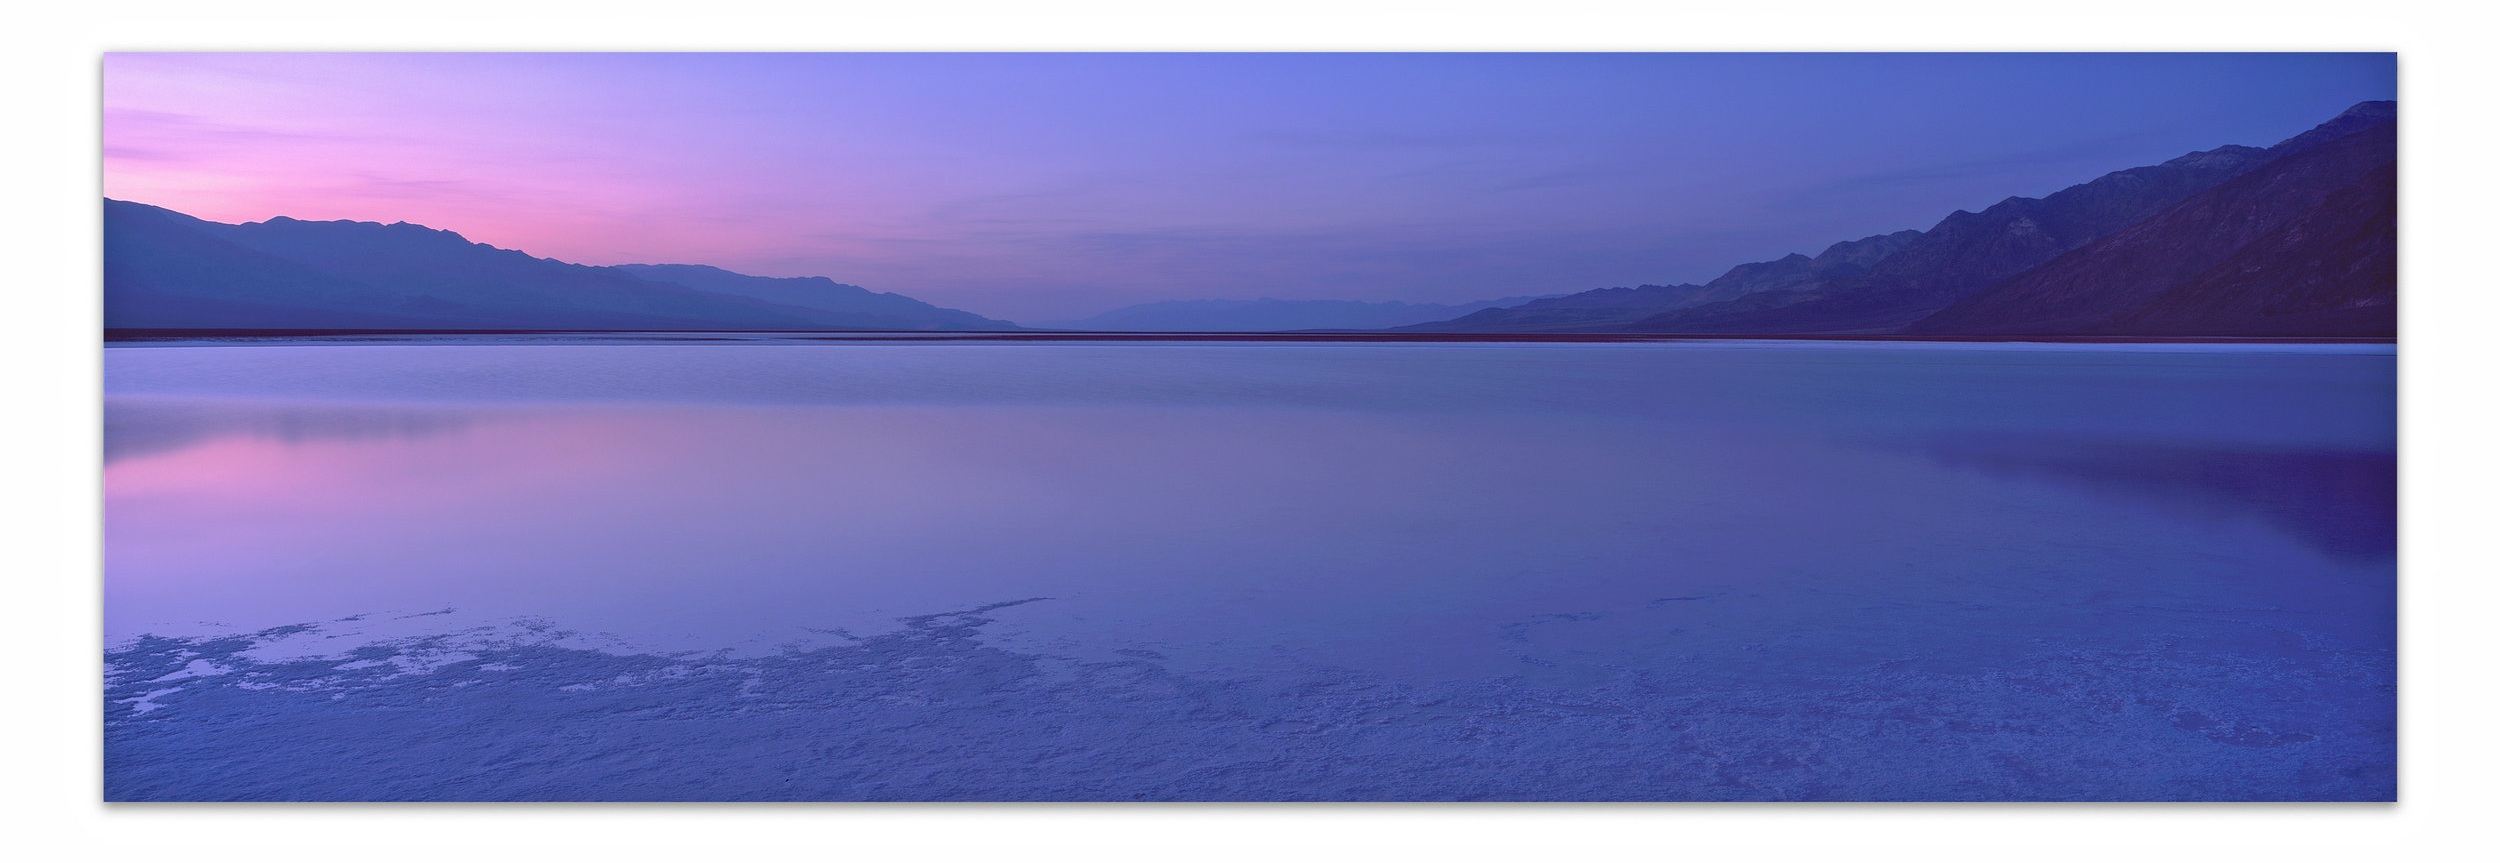 Fade to Blue   | California |  Edition of 11    A moment of reflection near Badwater Basin. Spring rains in Death Valley National Park flooded the park at its lowest point offering an extremely rare glimpse at the hottest and driest location on earth with standing water for nearly 2 weeks during the month of March.    20x60, 24x72, 30x90, 40x120, 50x150 (Panels Only)